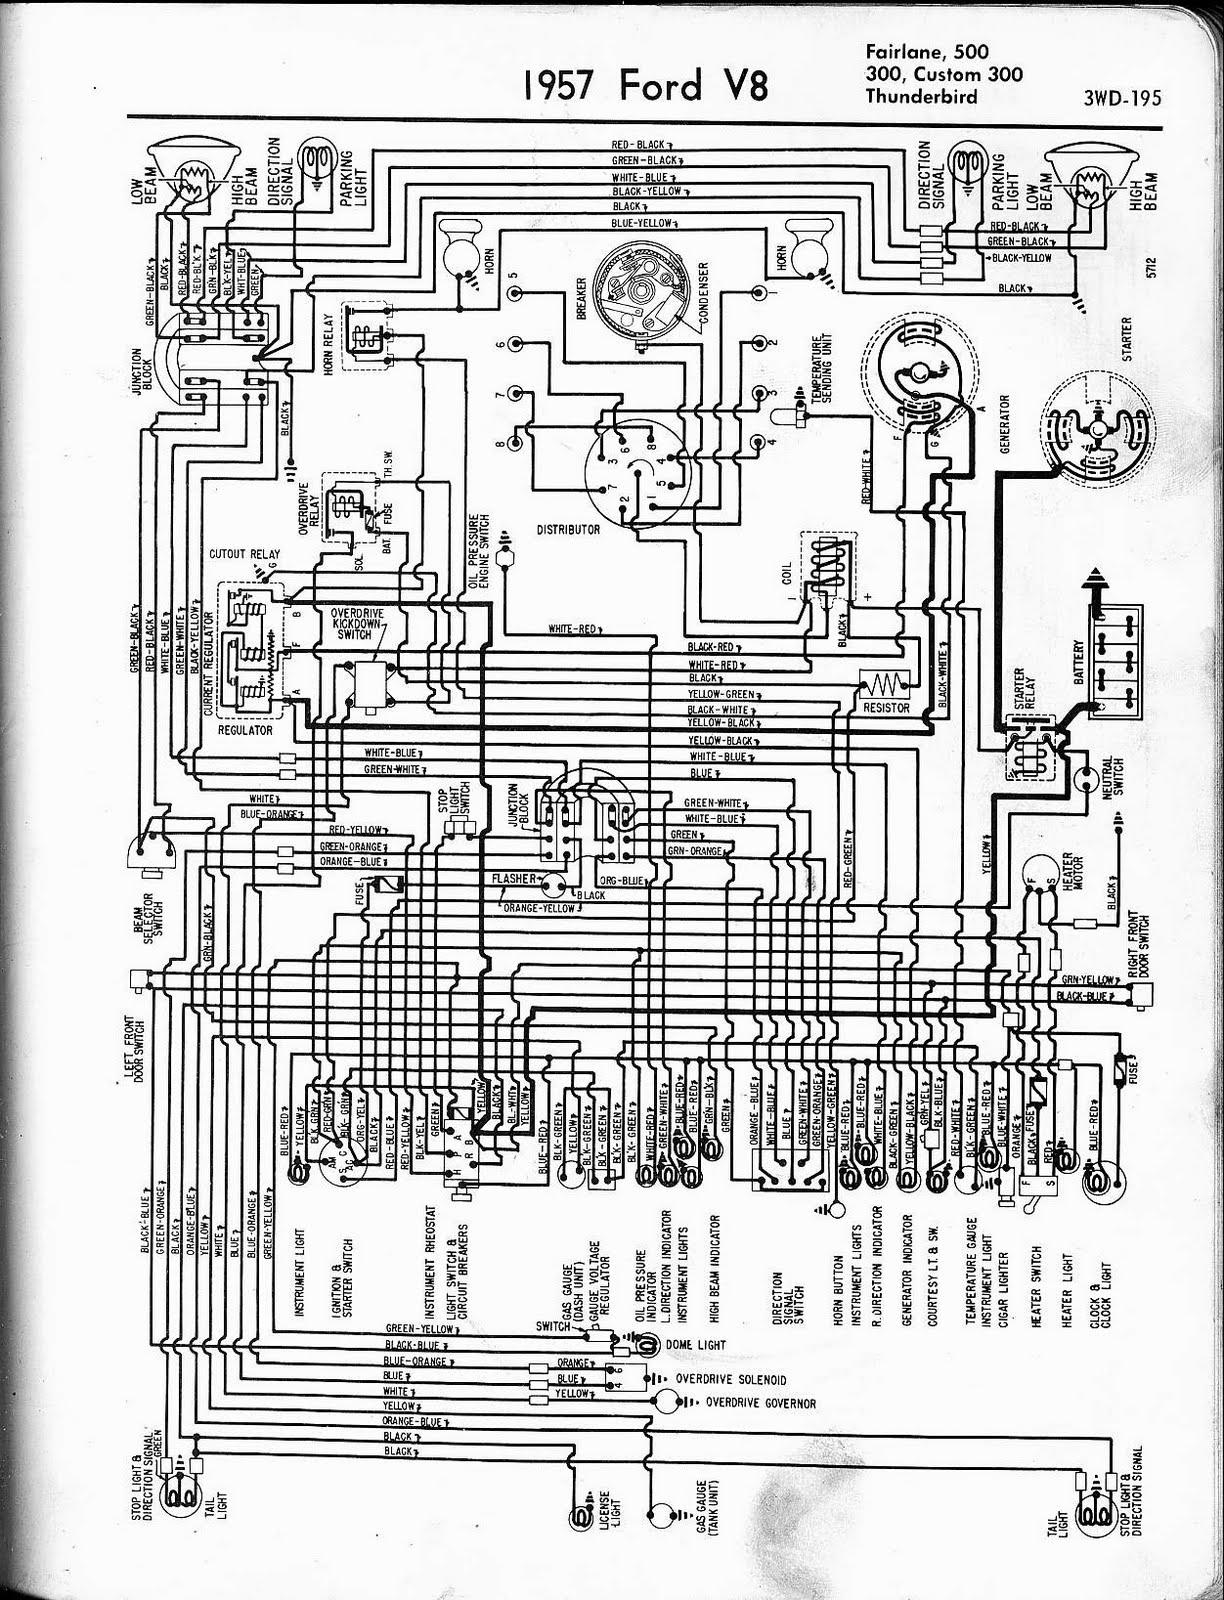 small resolution of free auto wiring diagram 1957 ford v8 fairlane custom300